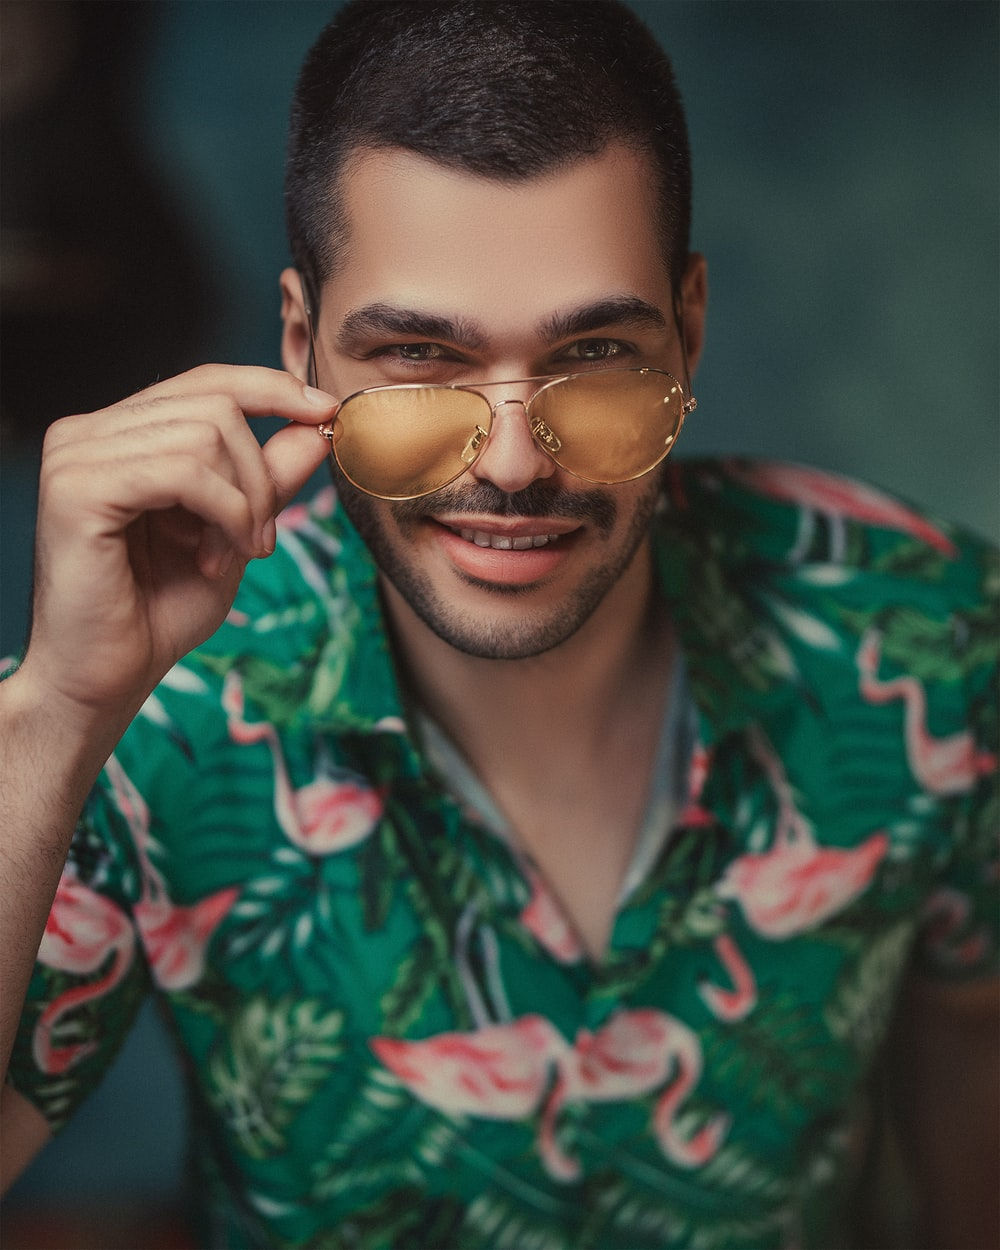 man in green and red floral button up shirt wearing gold framed sunglasses